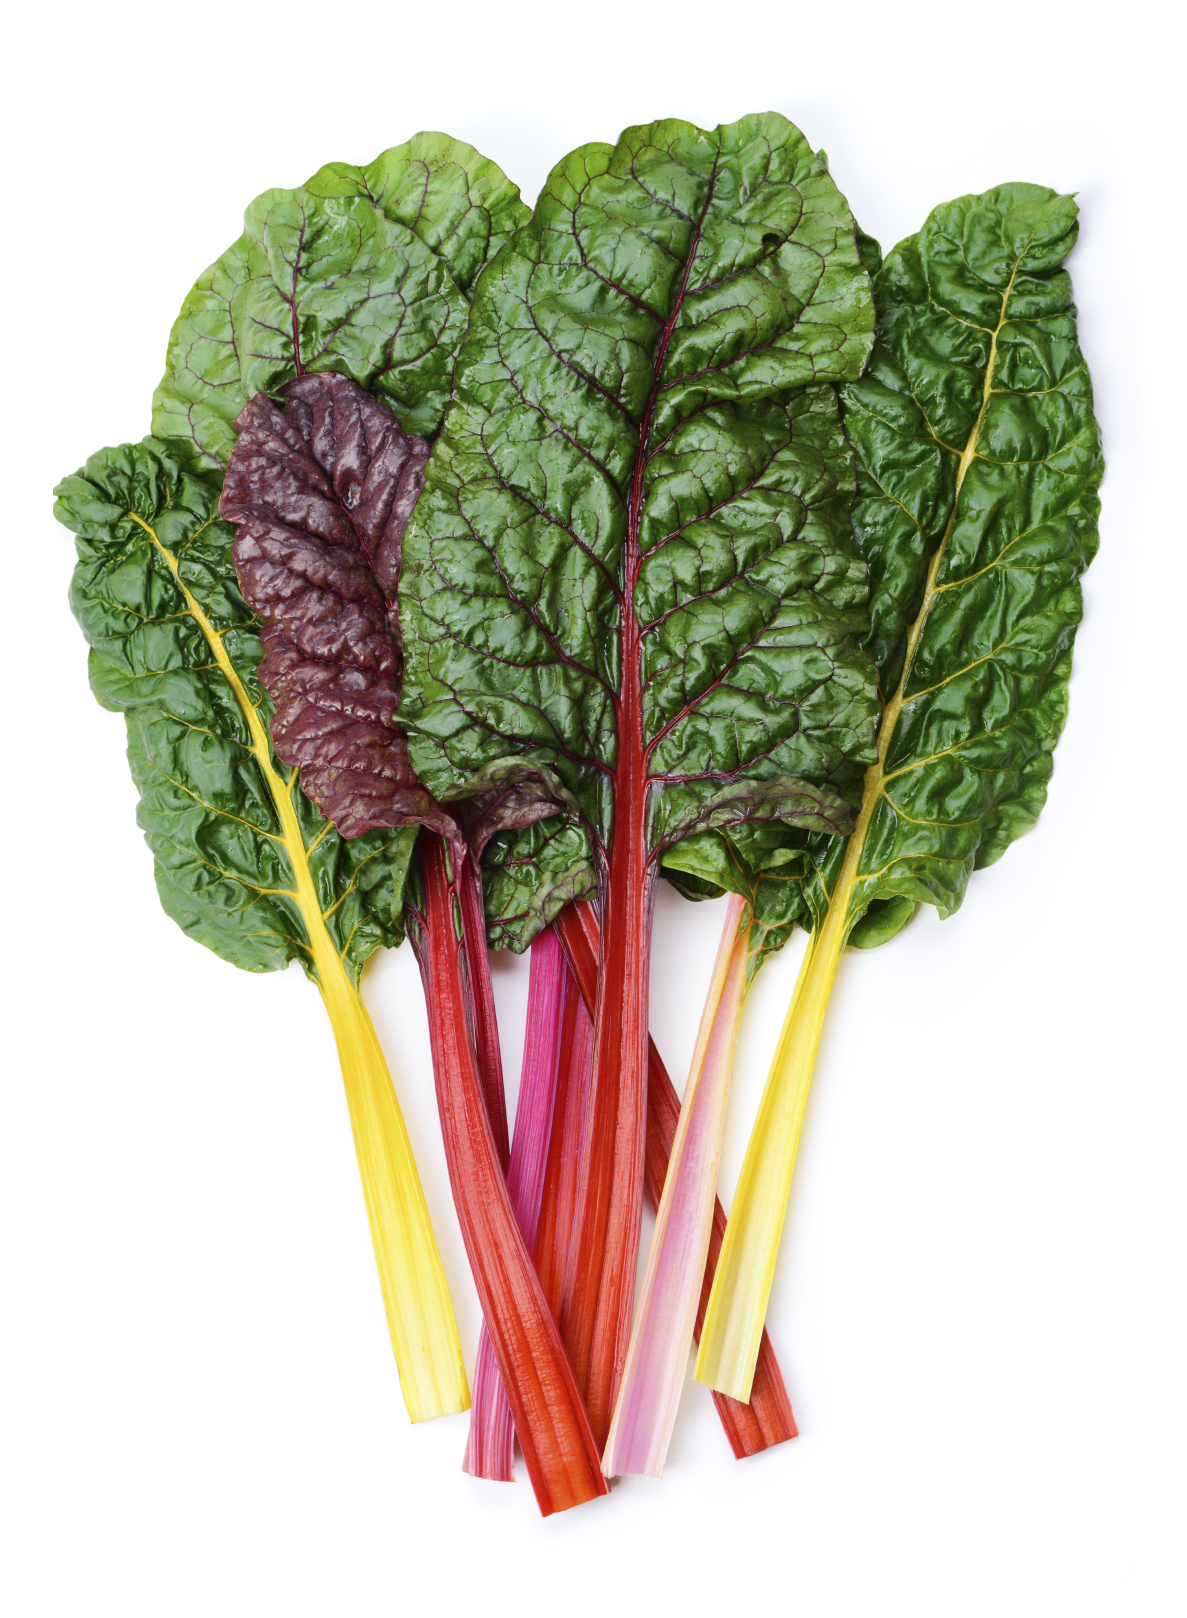 Give Swiss Chard A Try The Secret Ingredient